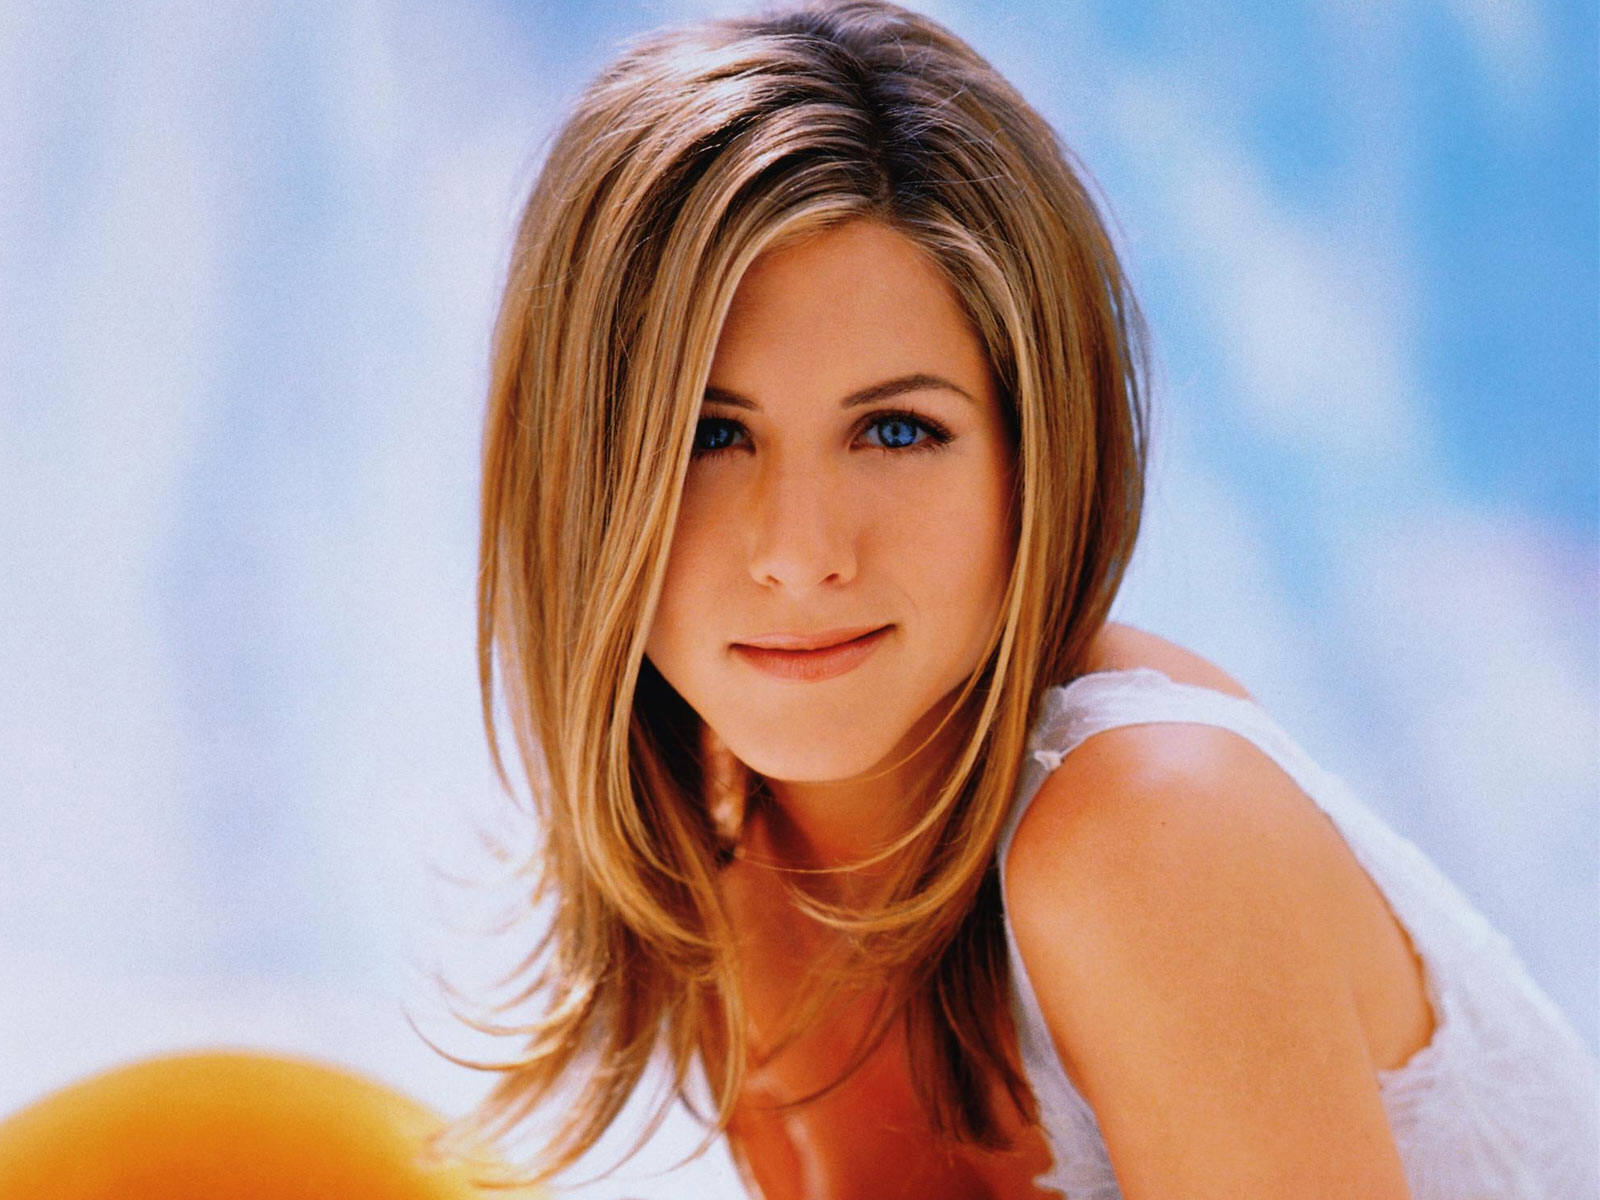 http://1.bp.blogspot.com/-mL9TNnlgceQ/T9TXGiyrvPI/AAAAAAAACVg/bE9Rk73tIc8/s1600/jennifer+aniston+wallpaper+hd+ii.jpg